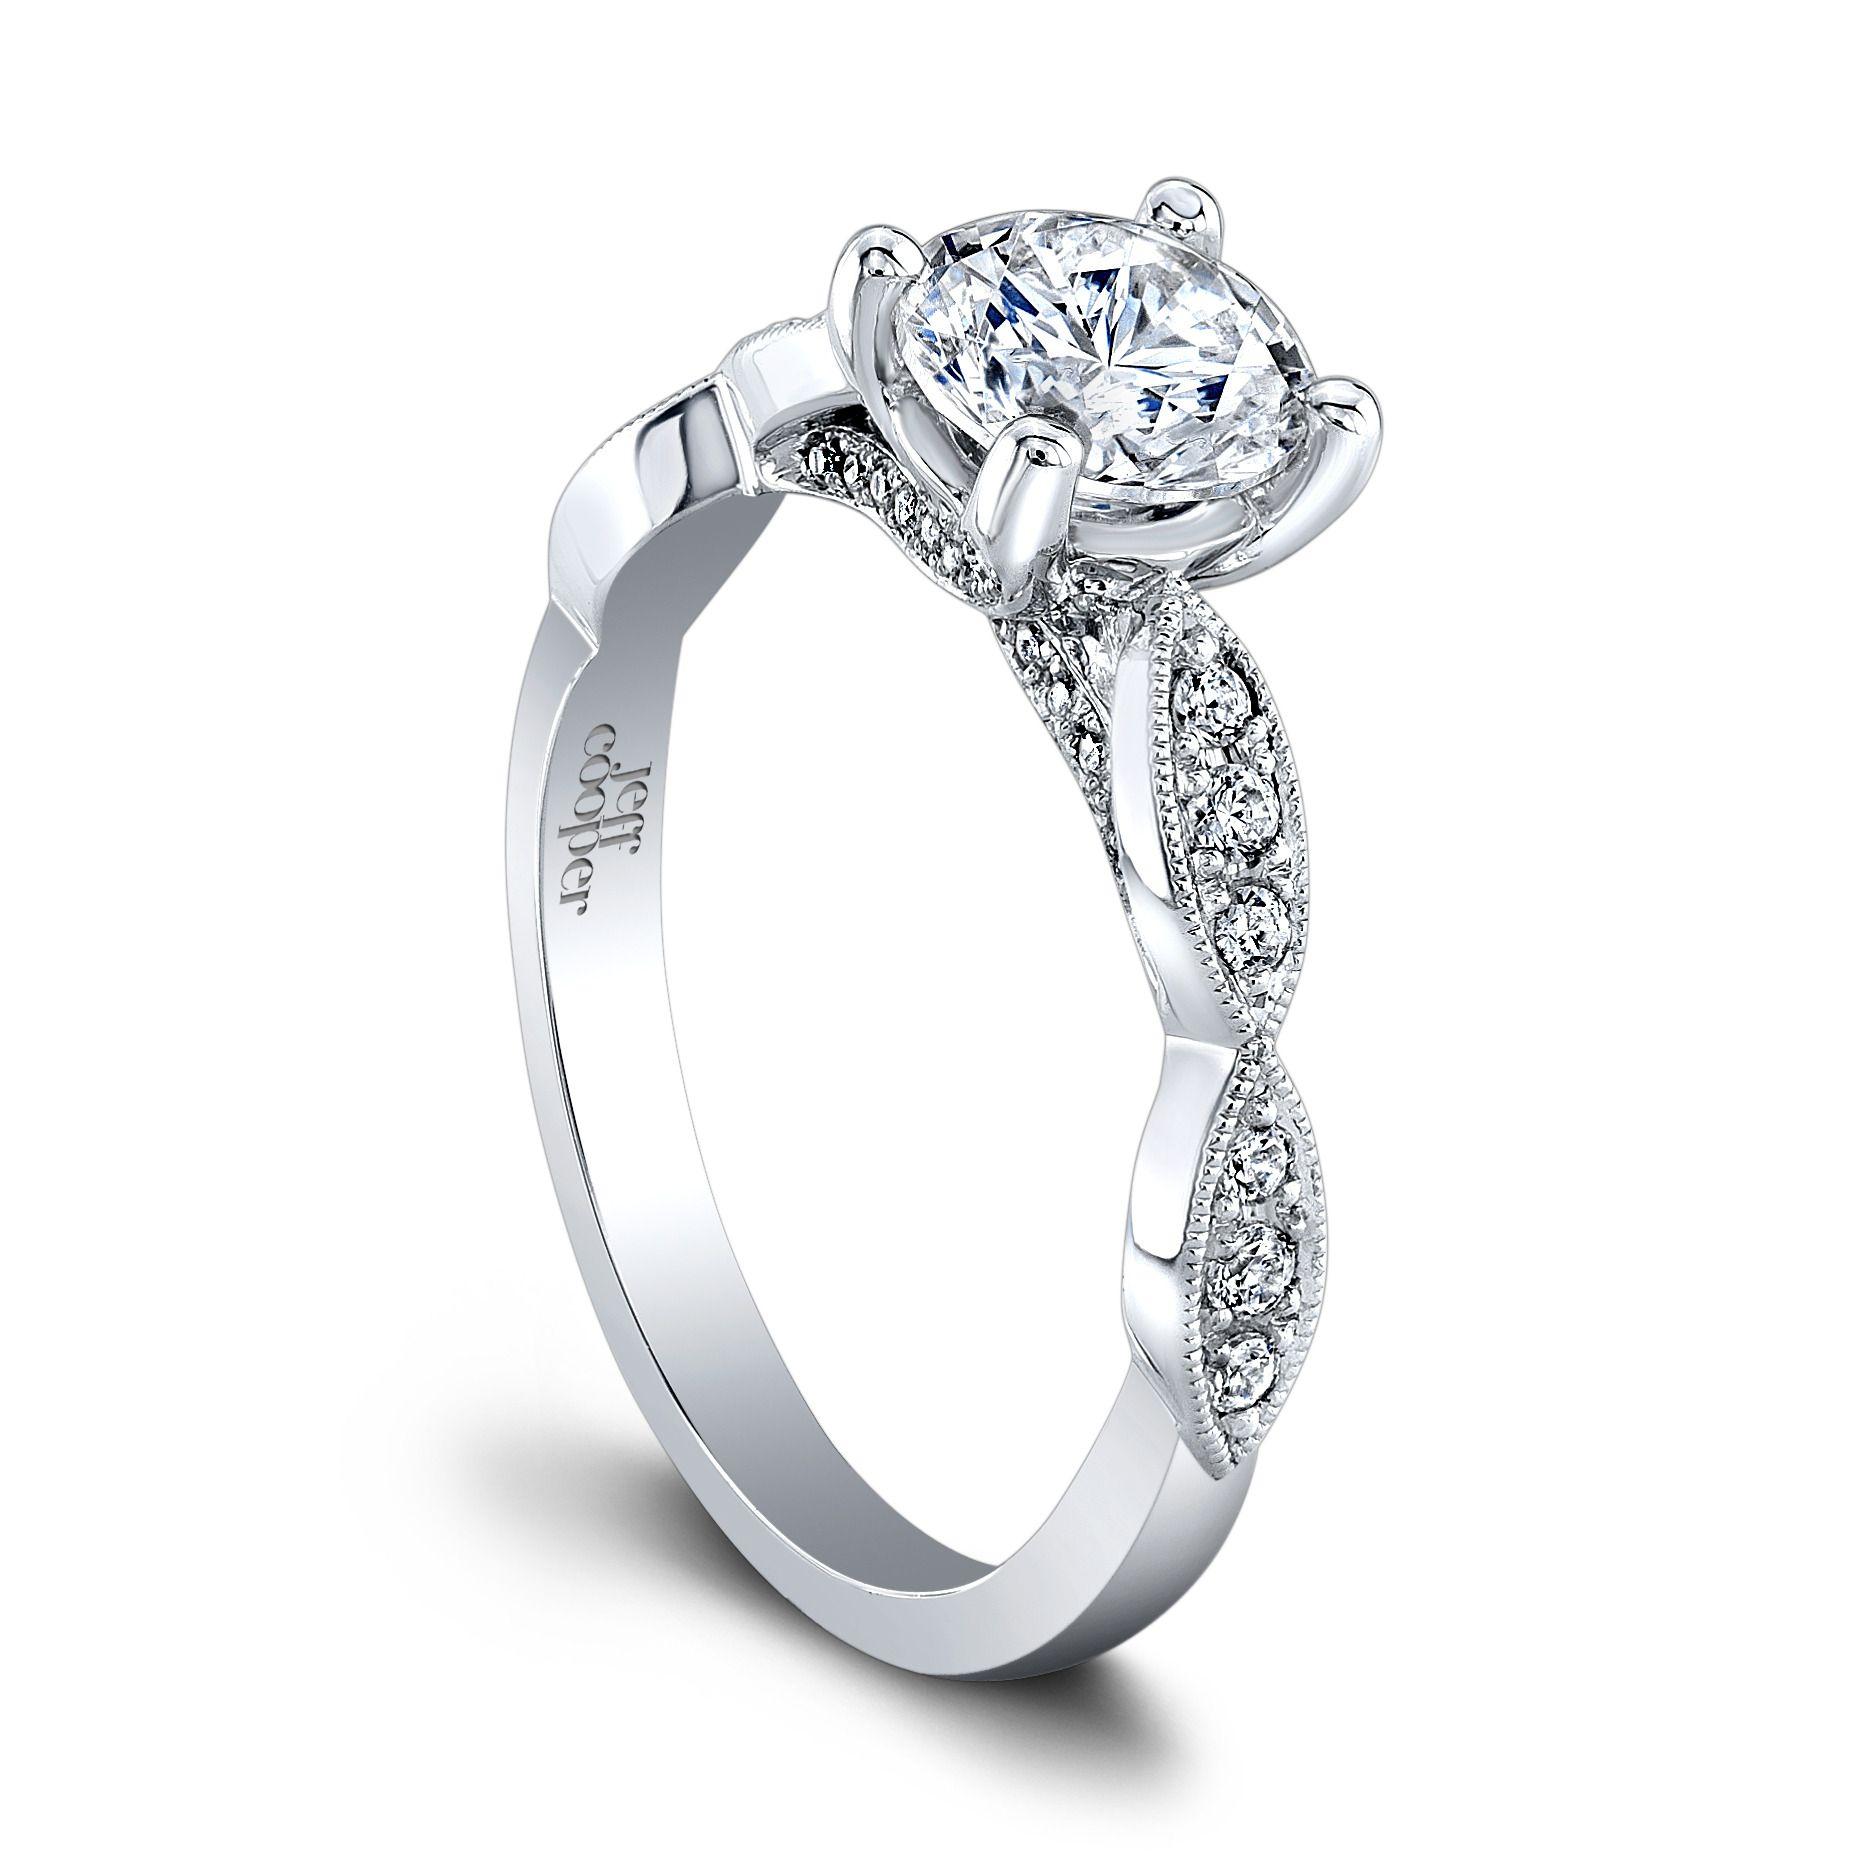 All precious metals scratch, and platinum is no exception. It is unique in that the metal is only displaced, not lost. Learn how to care for your platinum jewelry. http://bit.ly/1KgjfvO | Herbert's Jewelers